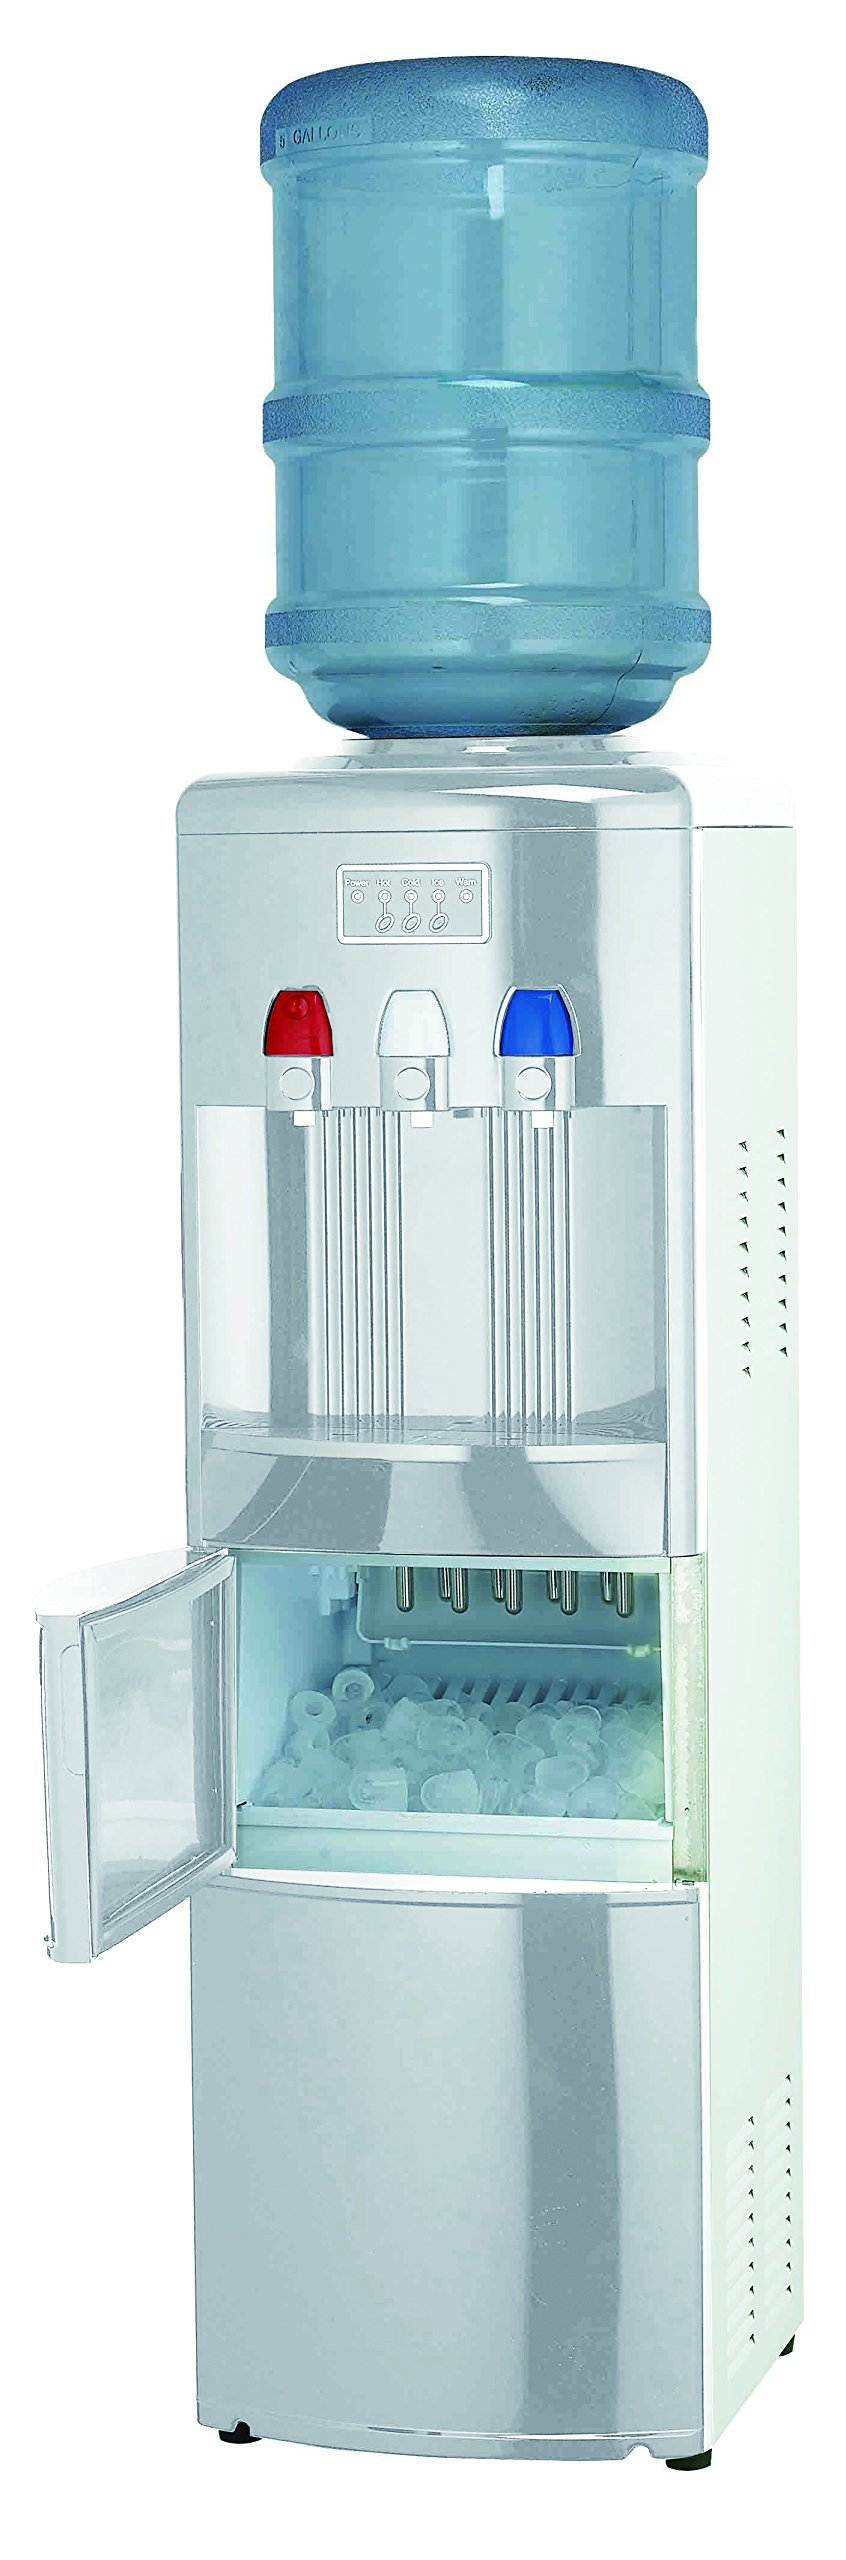 Igloo Water Cooler/Dispenser with Ice Maker, White